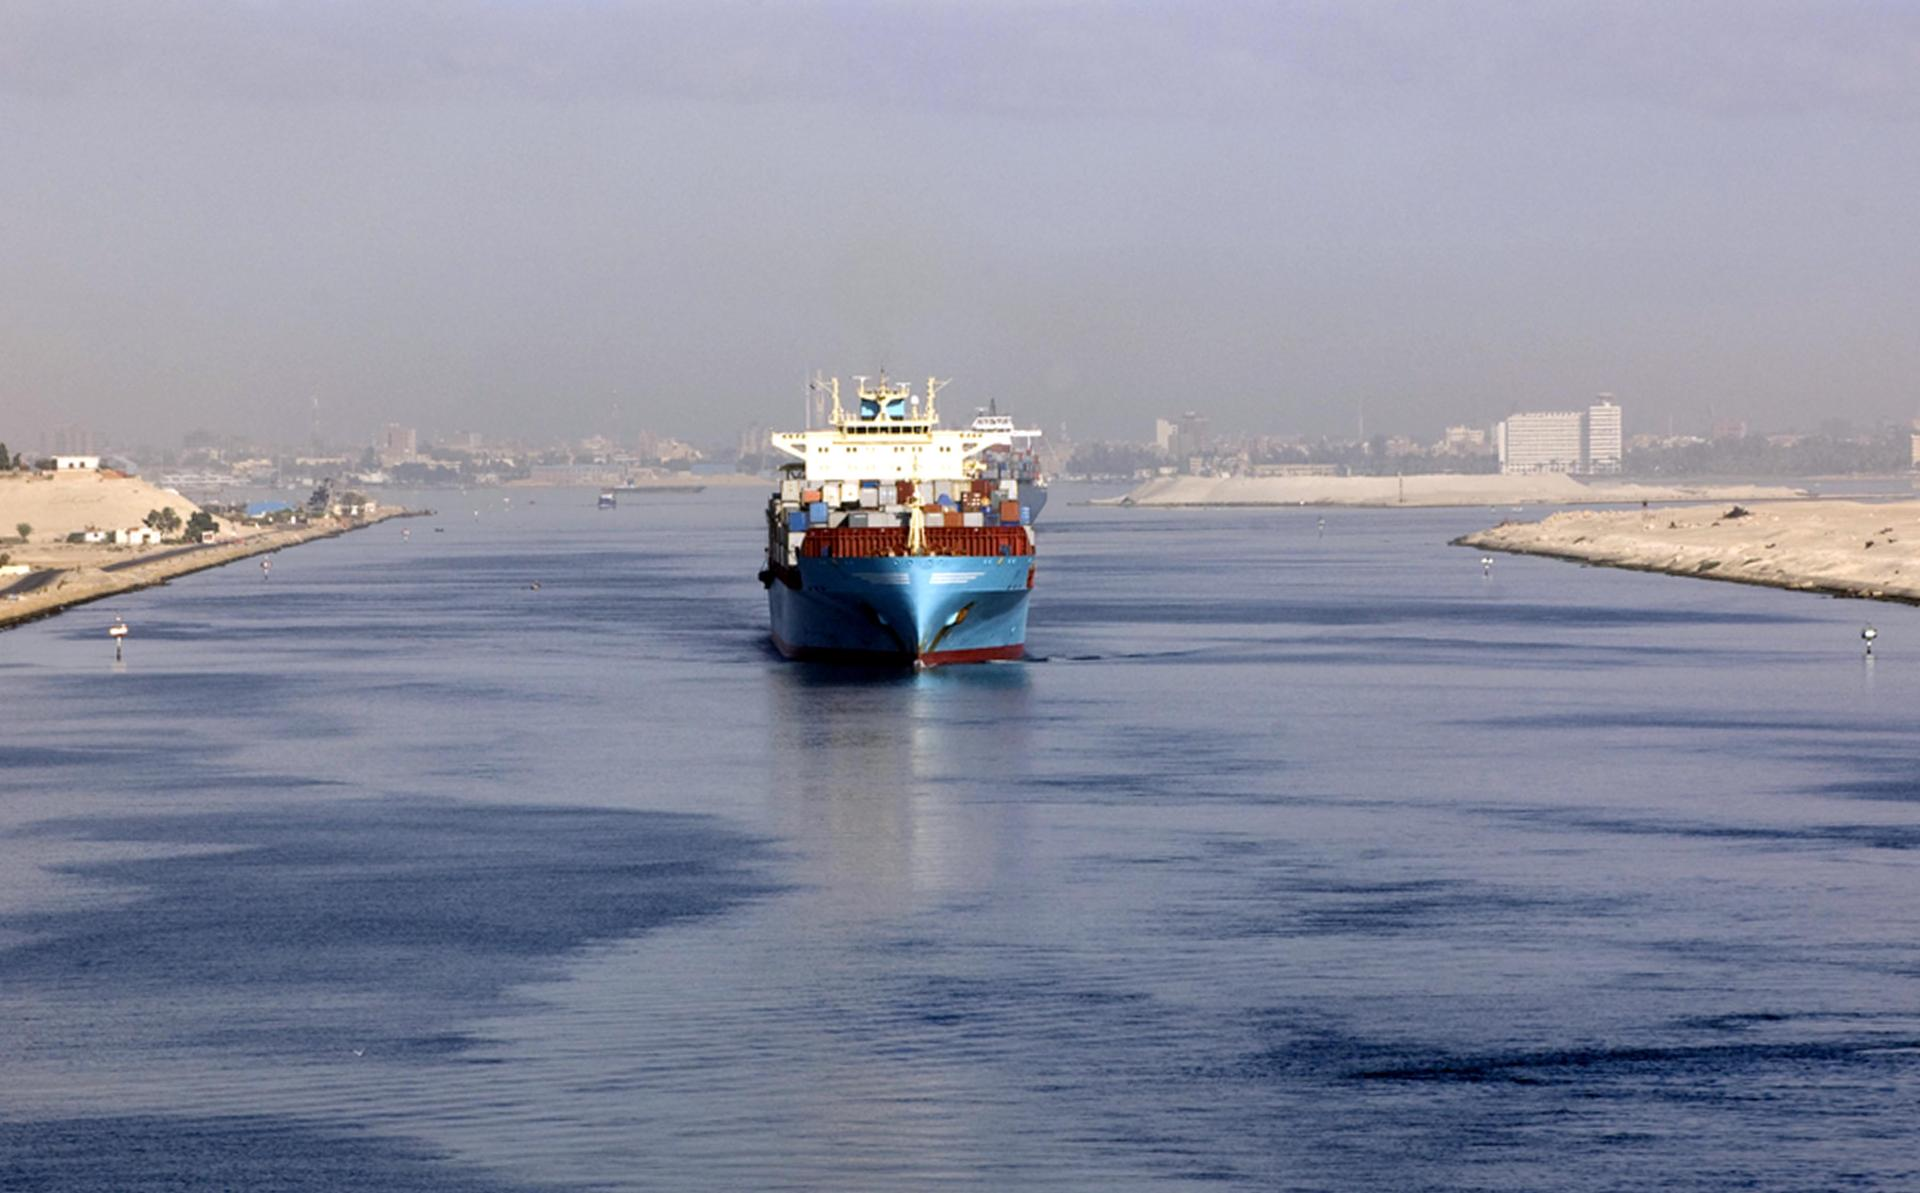 Alternative routes to Suez Canal and their disadvantages